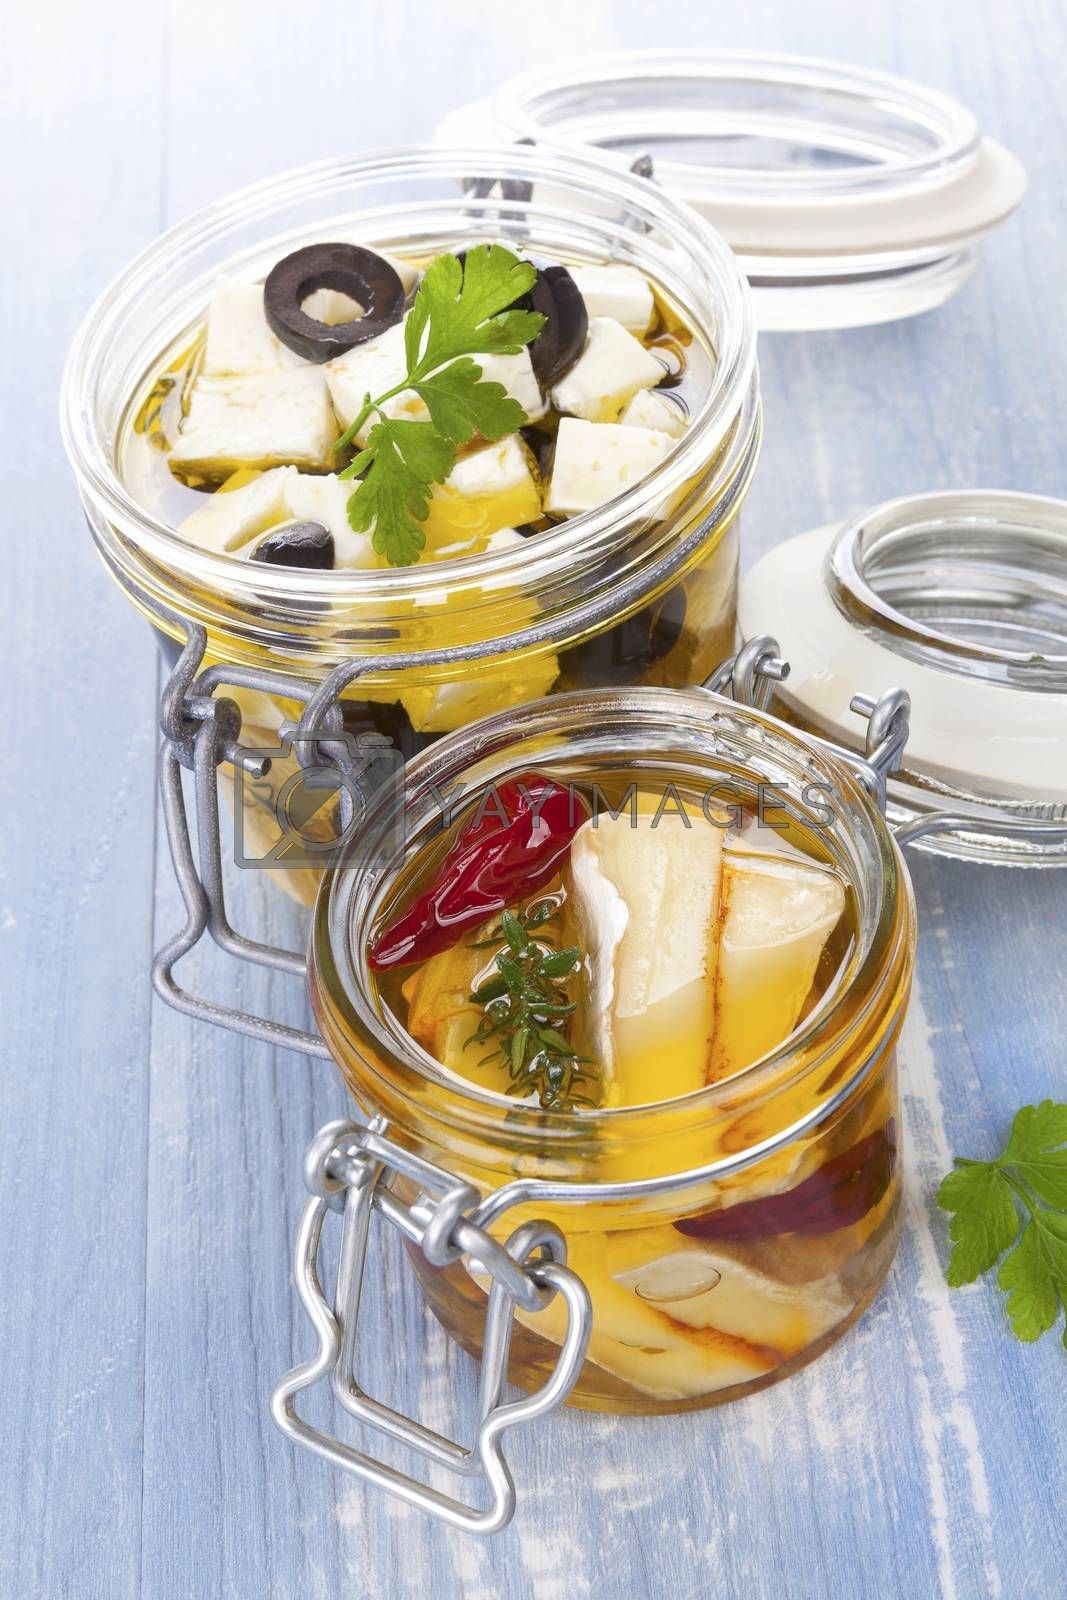 Marinated cheese in glass jar on blue wooden background. Culinary cheese eating.